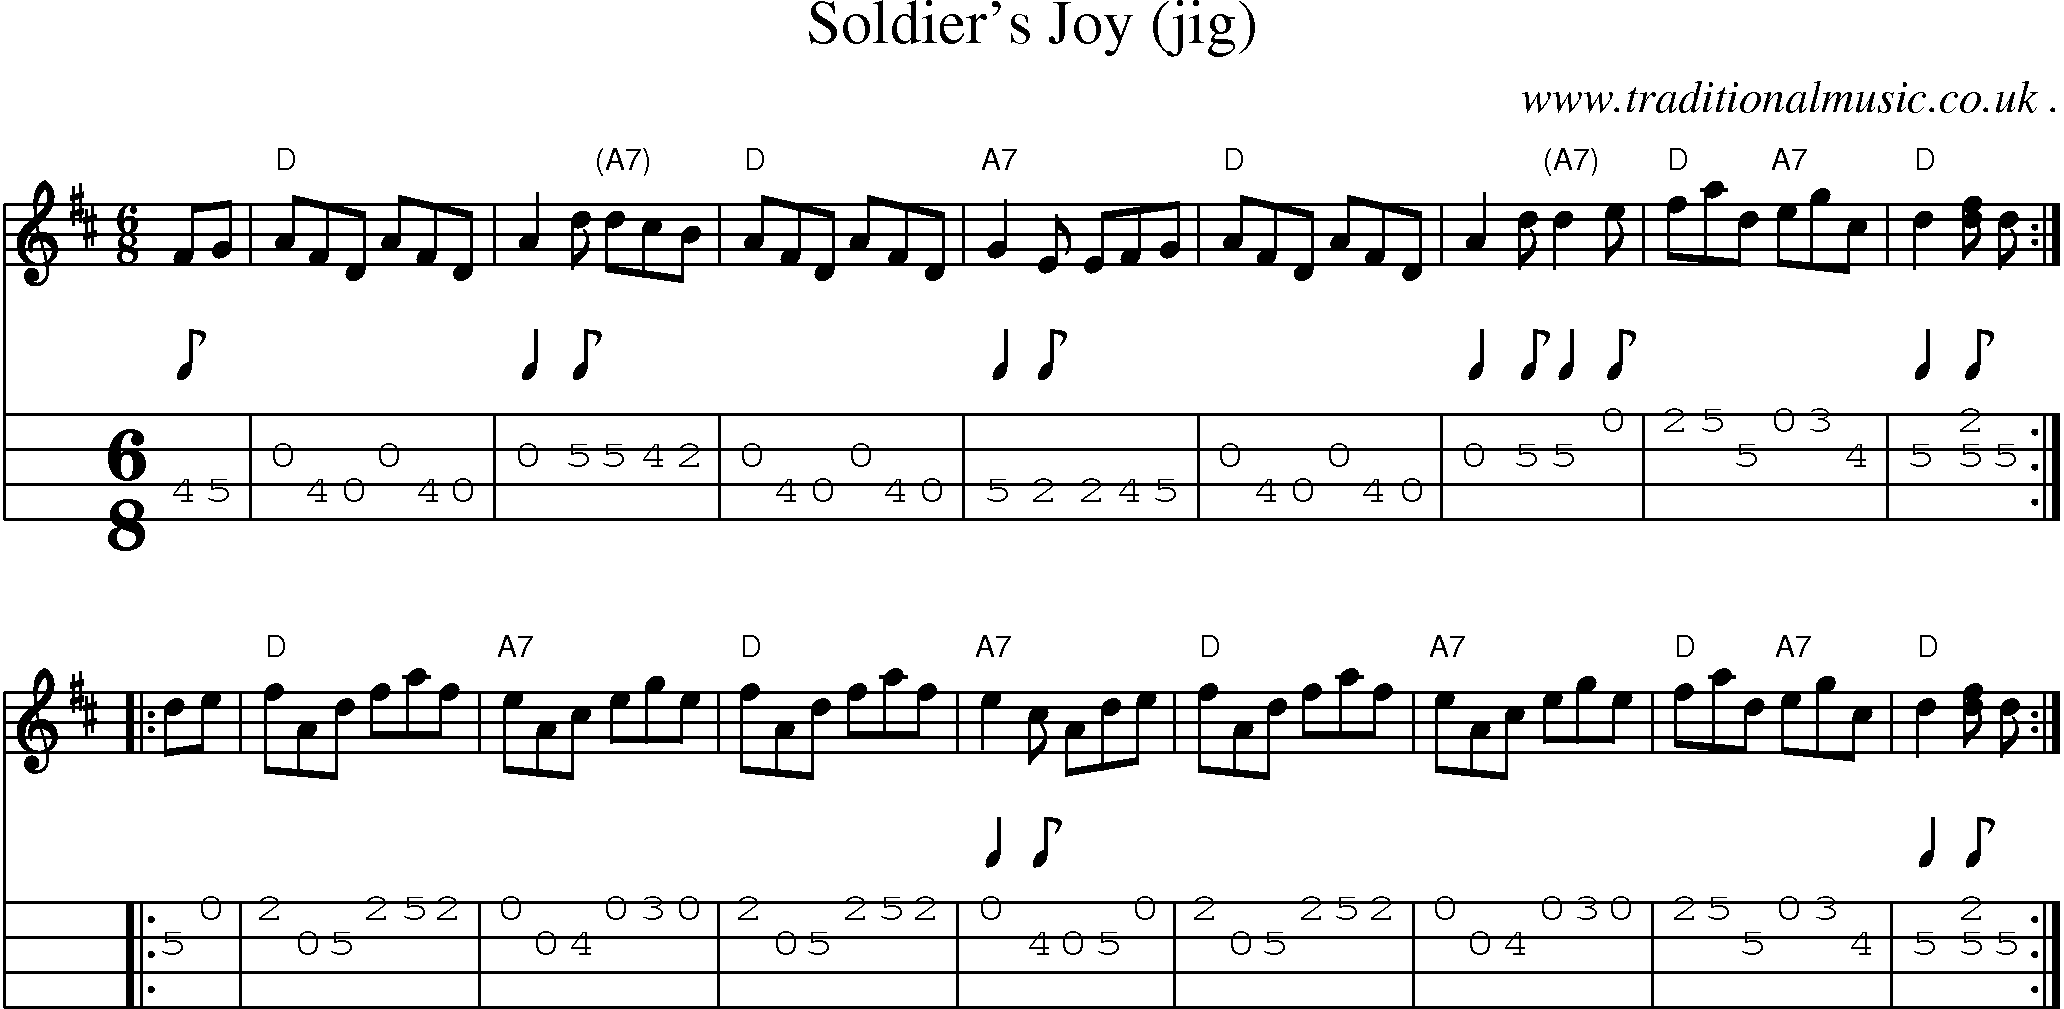 Sheet music score chords and mandolin tabs for soldiers joy jig sheet music score chords and mandolin tabs for soldiers joy jig hexwebz Image collections